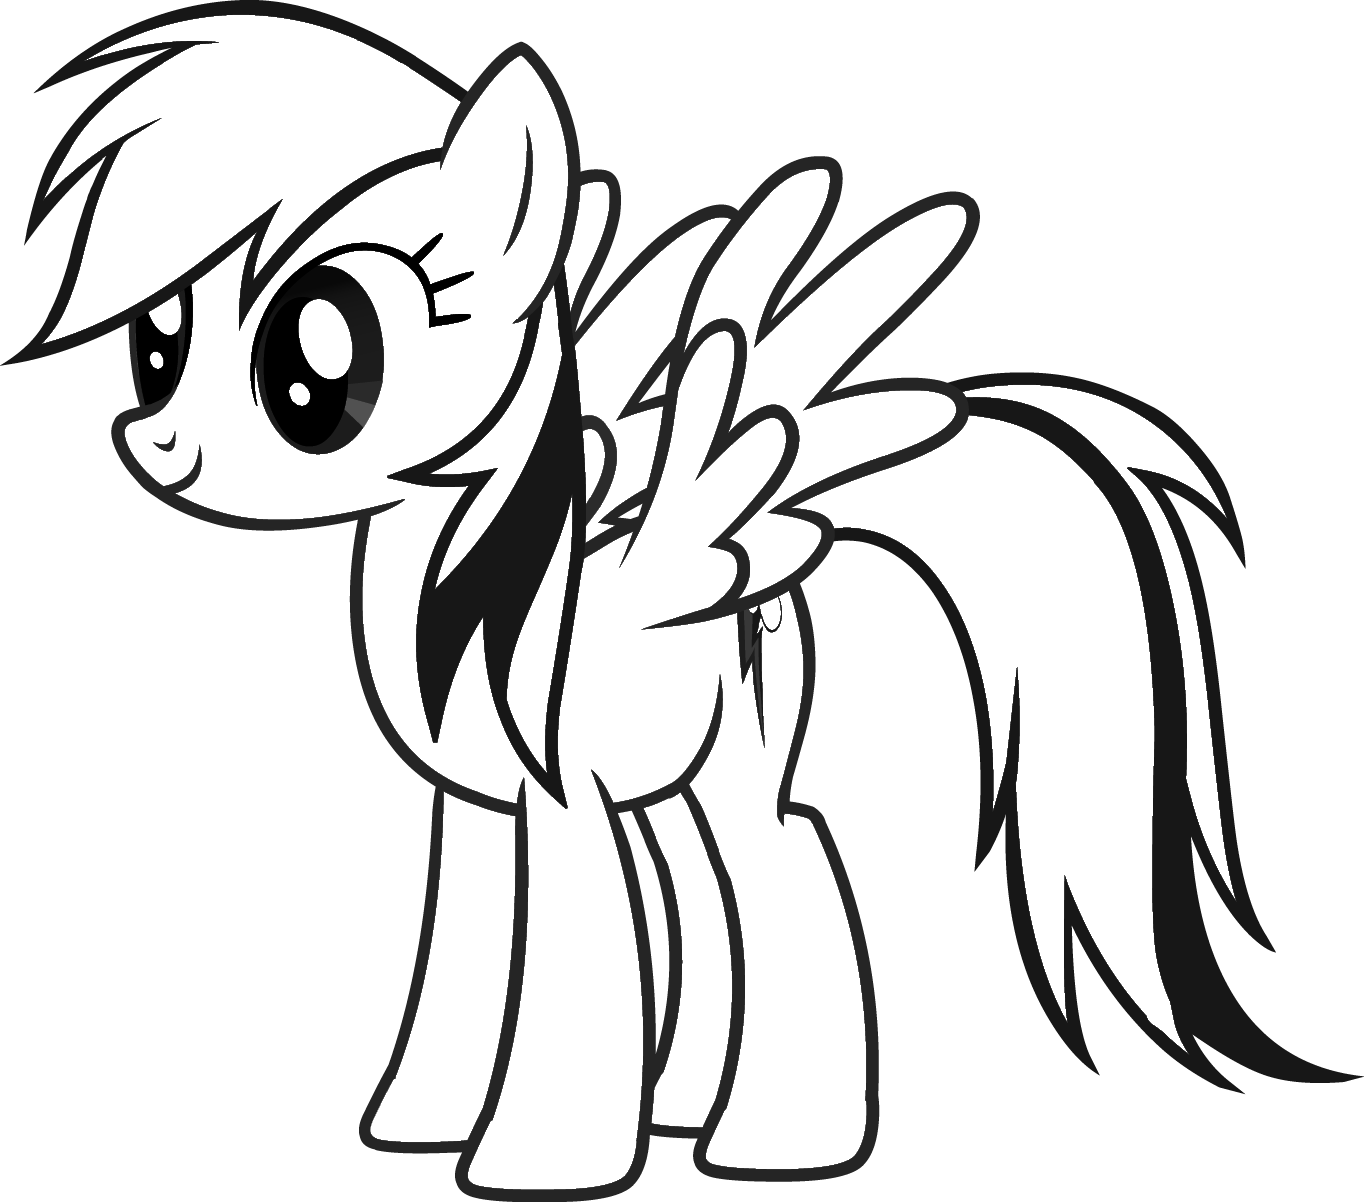 my little pony friendship is magic colouring pages my little pony friendship is magic coloring pages lets magic friendship colouring my little is pony pages